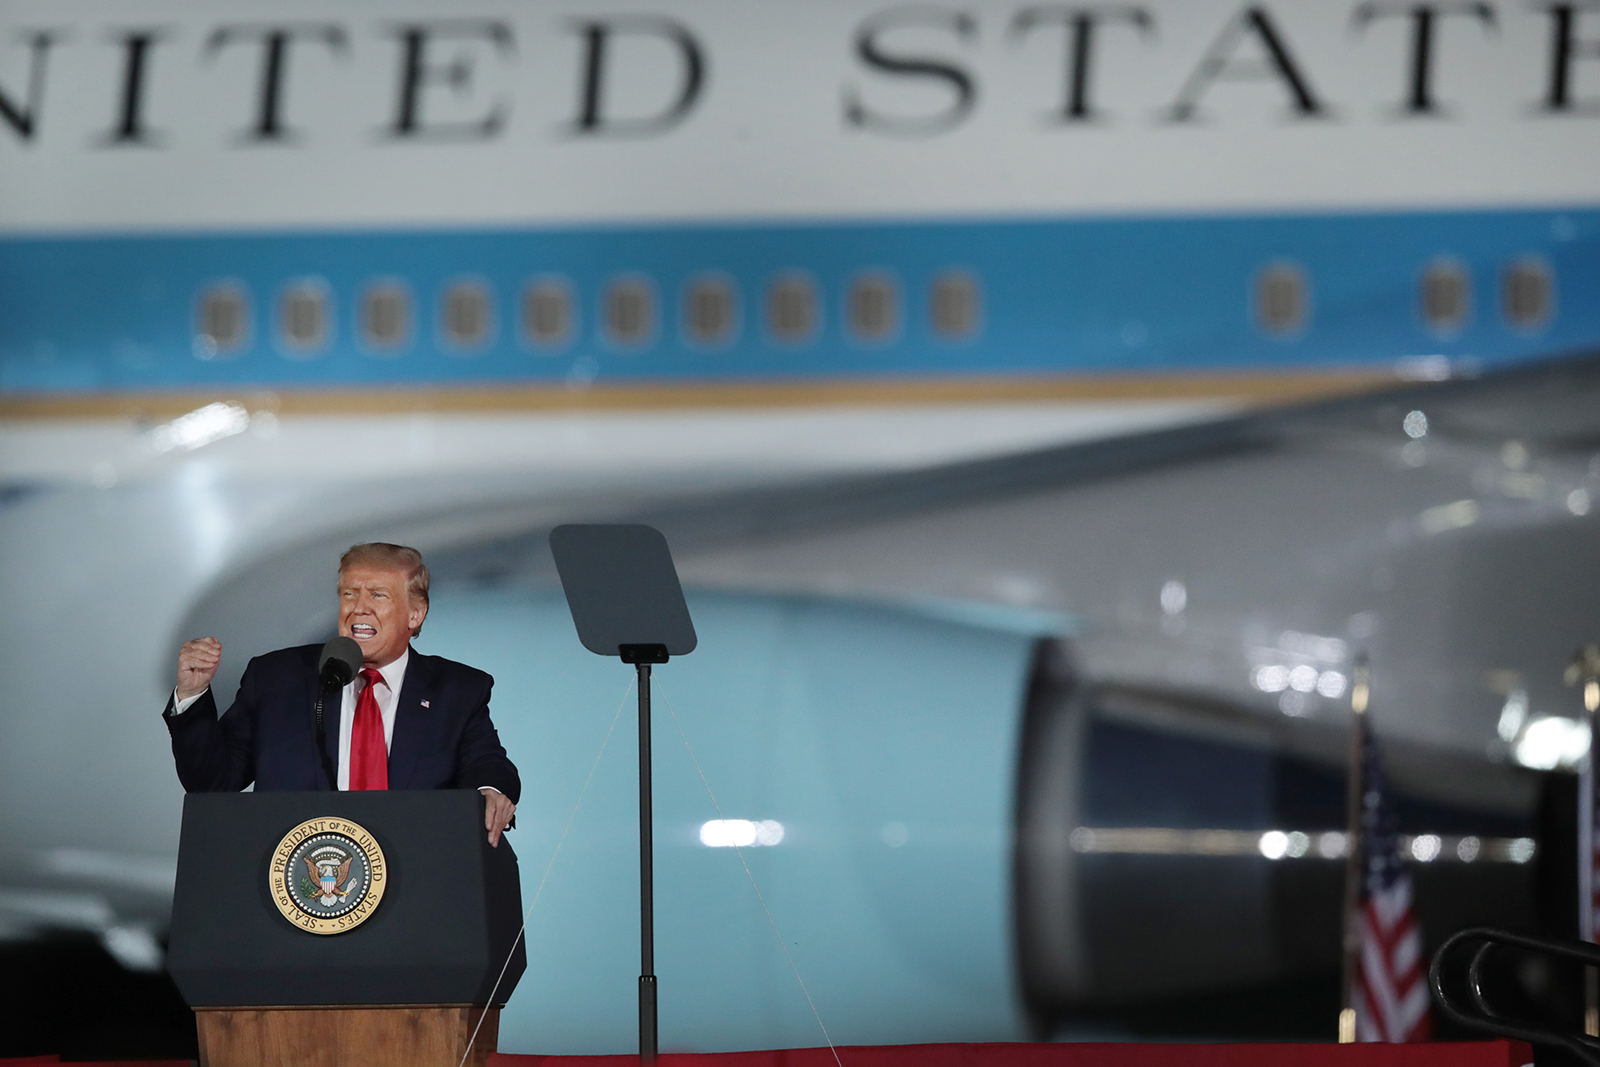 President Donald Trump speaks to supporters at a rally with Air Force One in the background in Freeland, Michigan, on September 10.